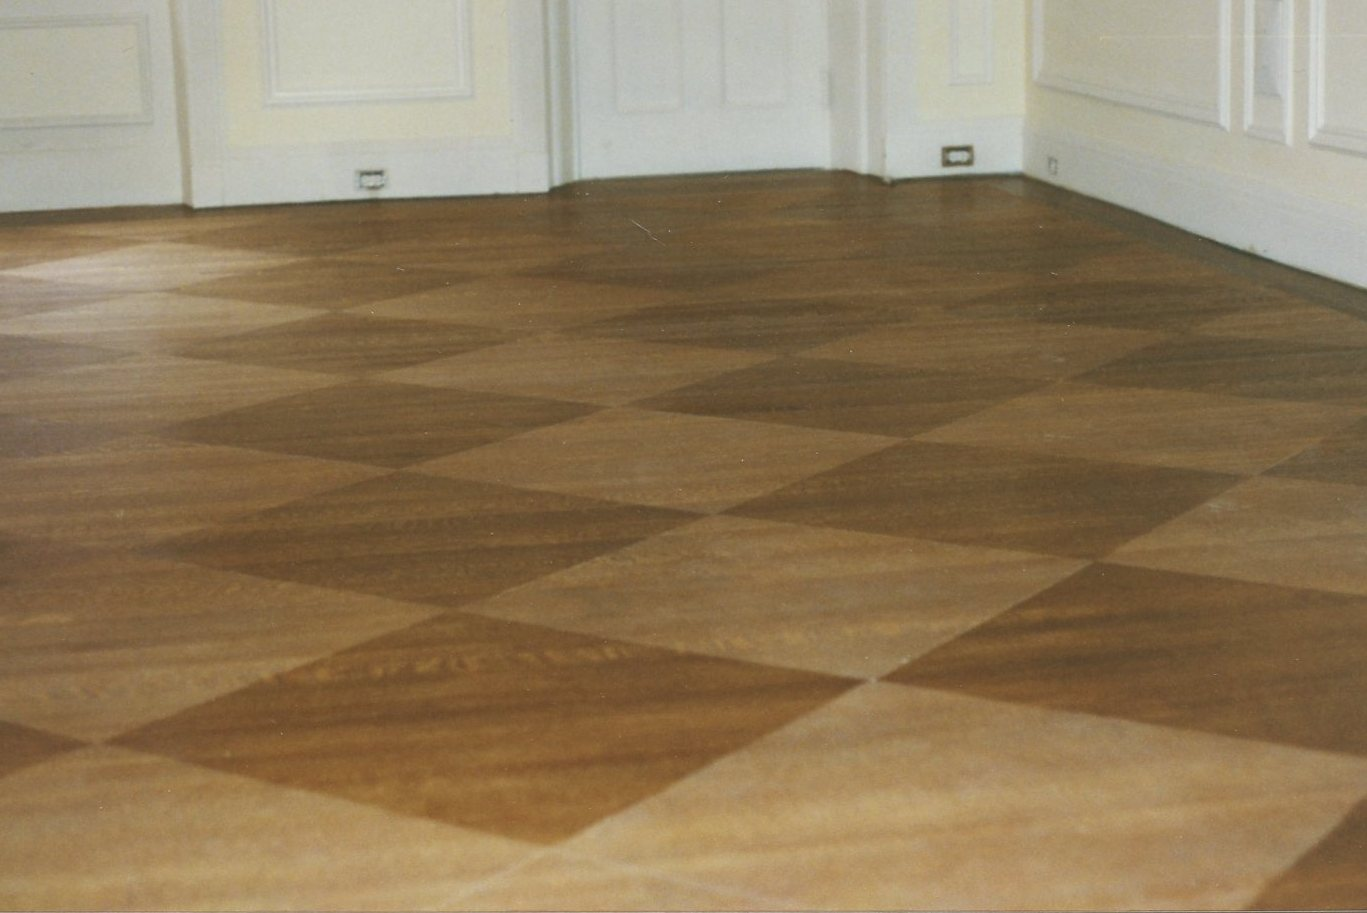 Stained hardwood floors duffyfloors for Flor flooring